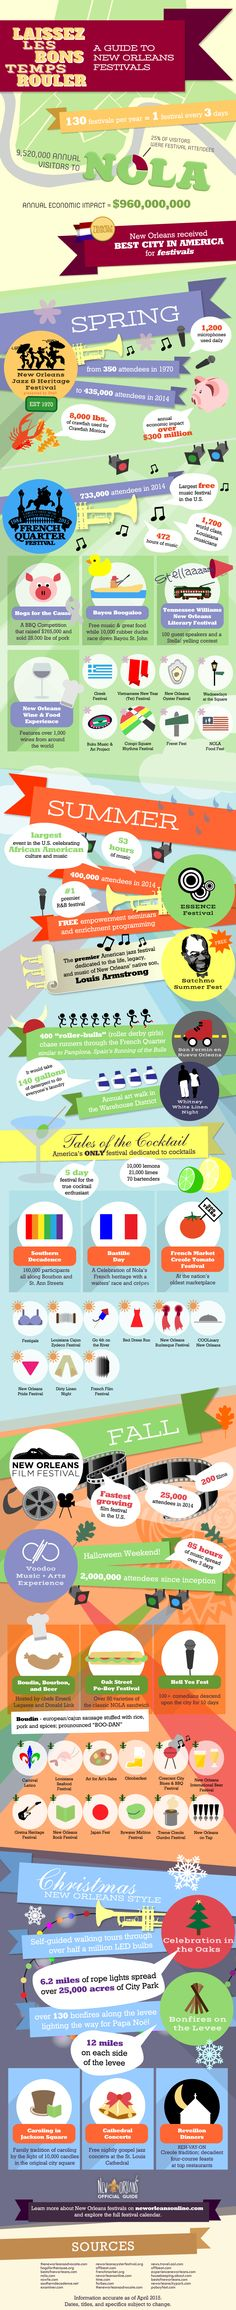 The Complete Guide To New Orleans Festivals [Infographic] | Daily Infographic